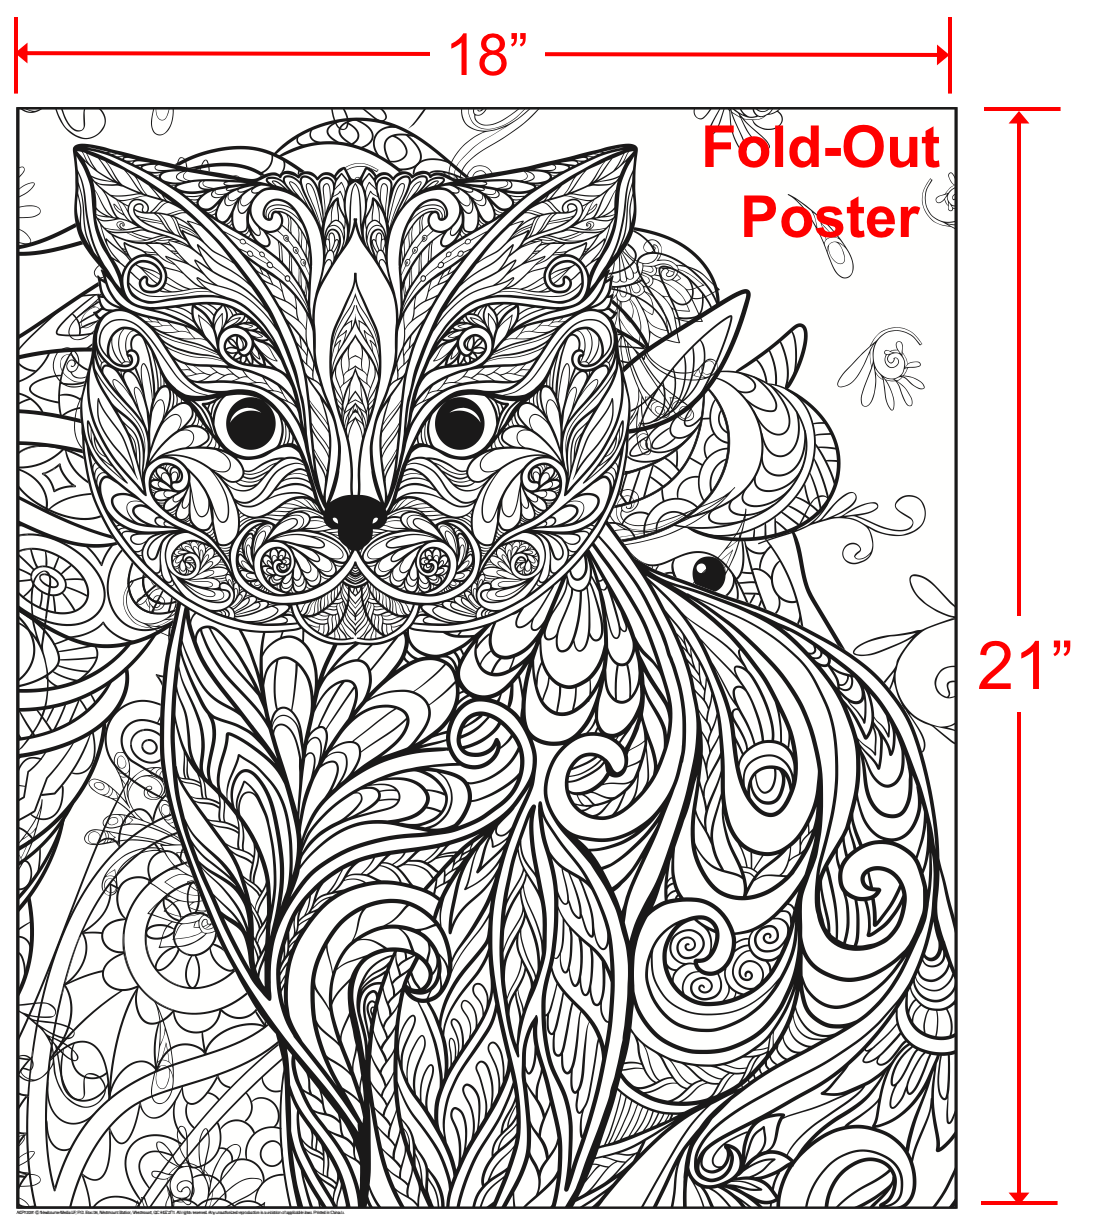 The coloring book poster - Wild About Cats Adult Coloring Book With Bonus Fold Out Poster And Music Cd